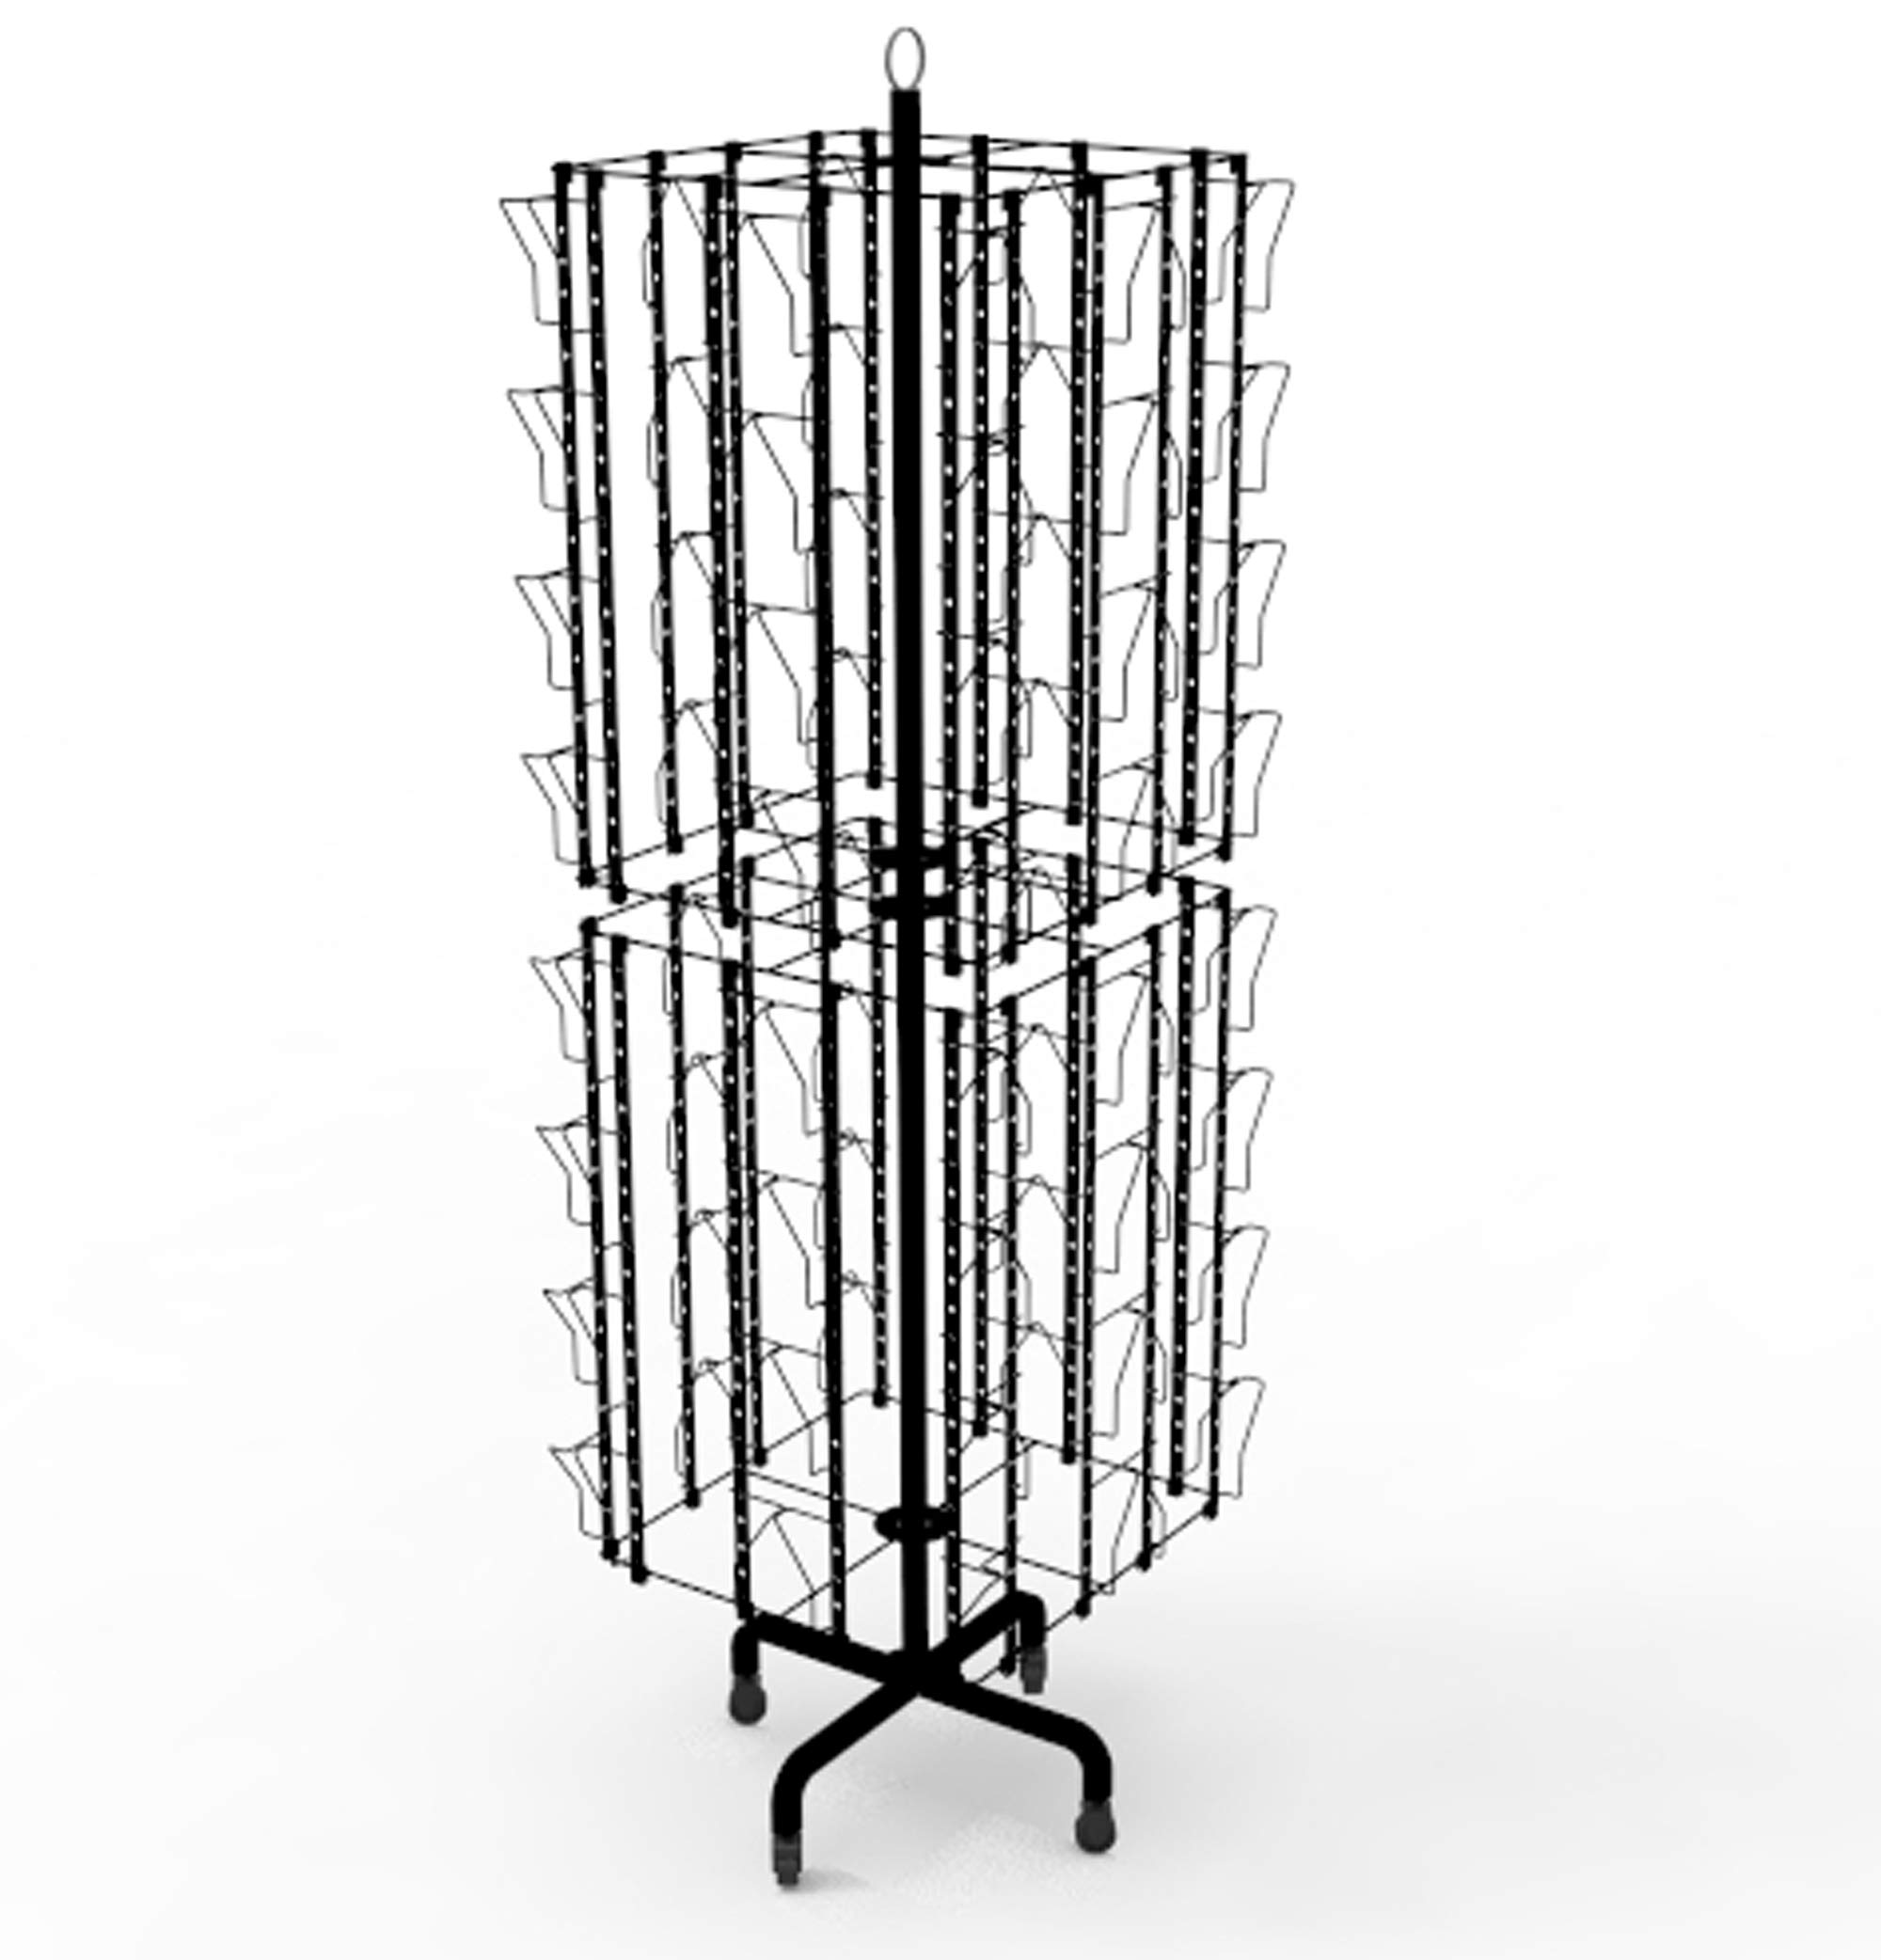 FixtureDisplays Up to 8.5'' Wide 64-Pocket Adjustable Display Rack, Double Tier Greeting Post Card Christmas Holiday Spinning Rack Stand 11603-L-DOUBLE-BLK